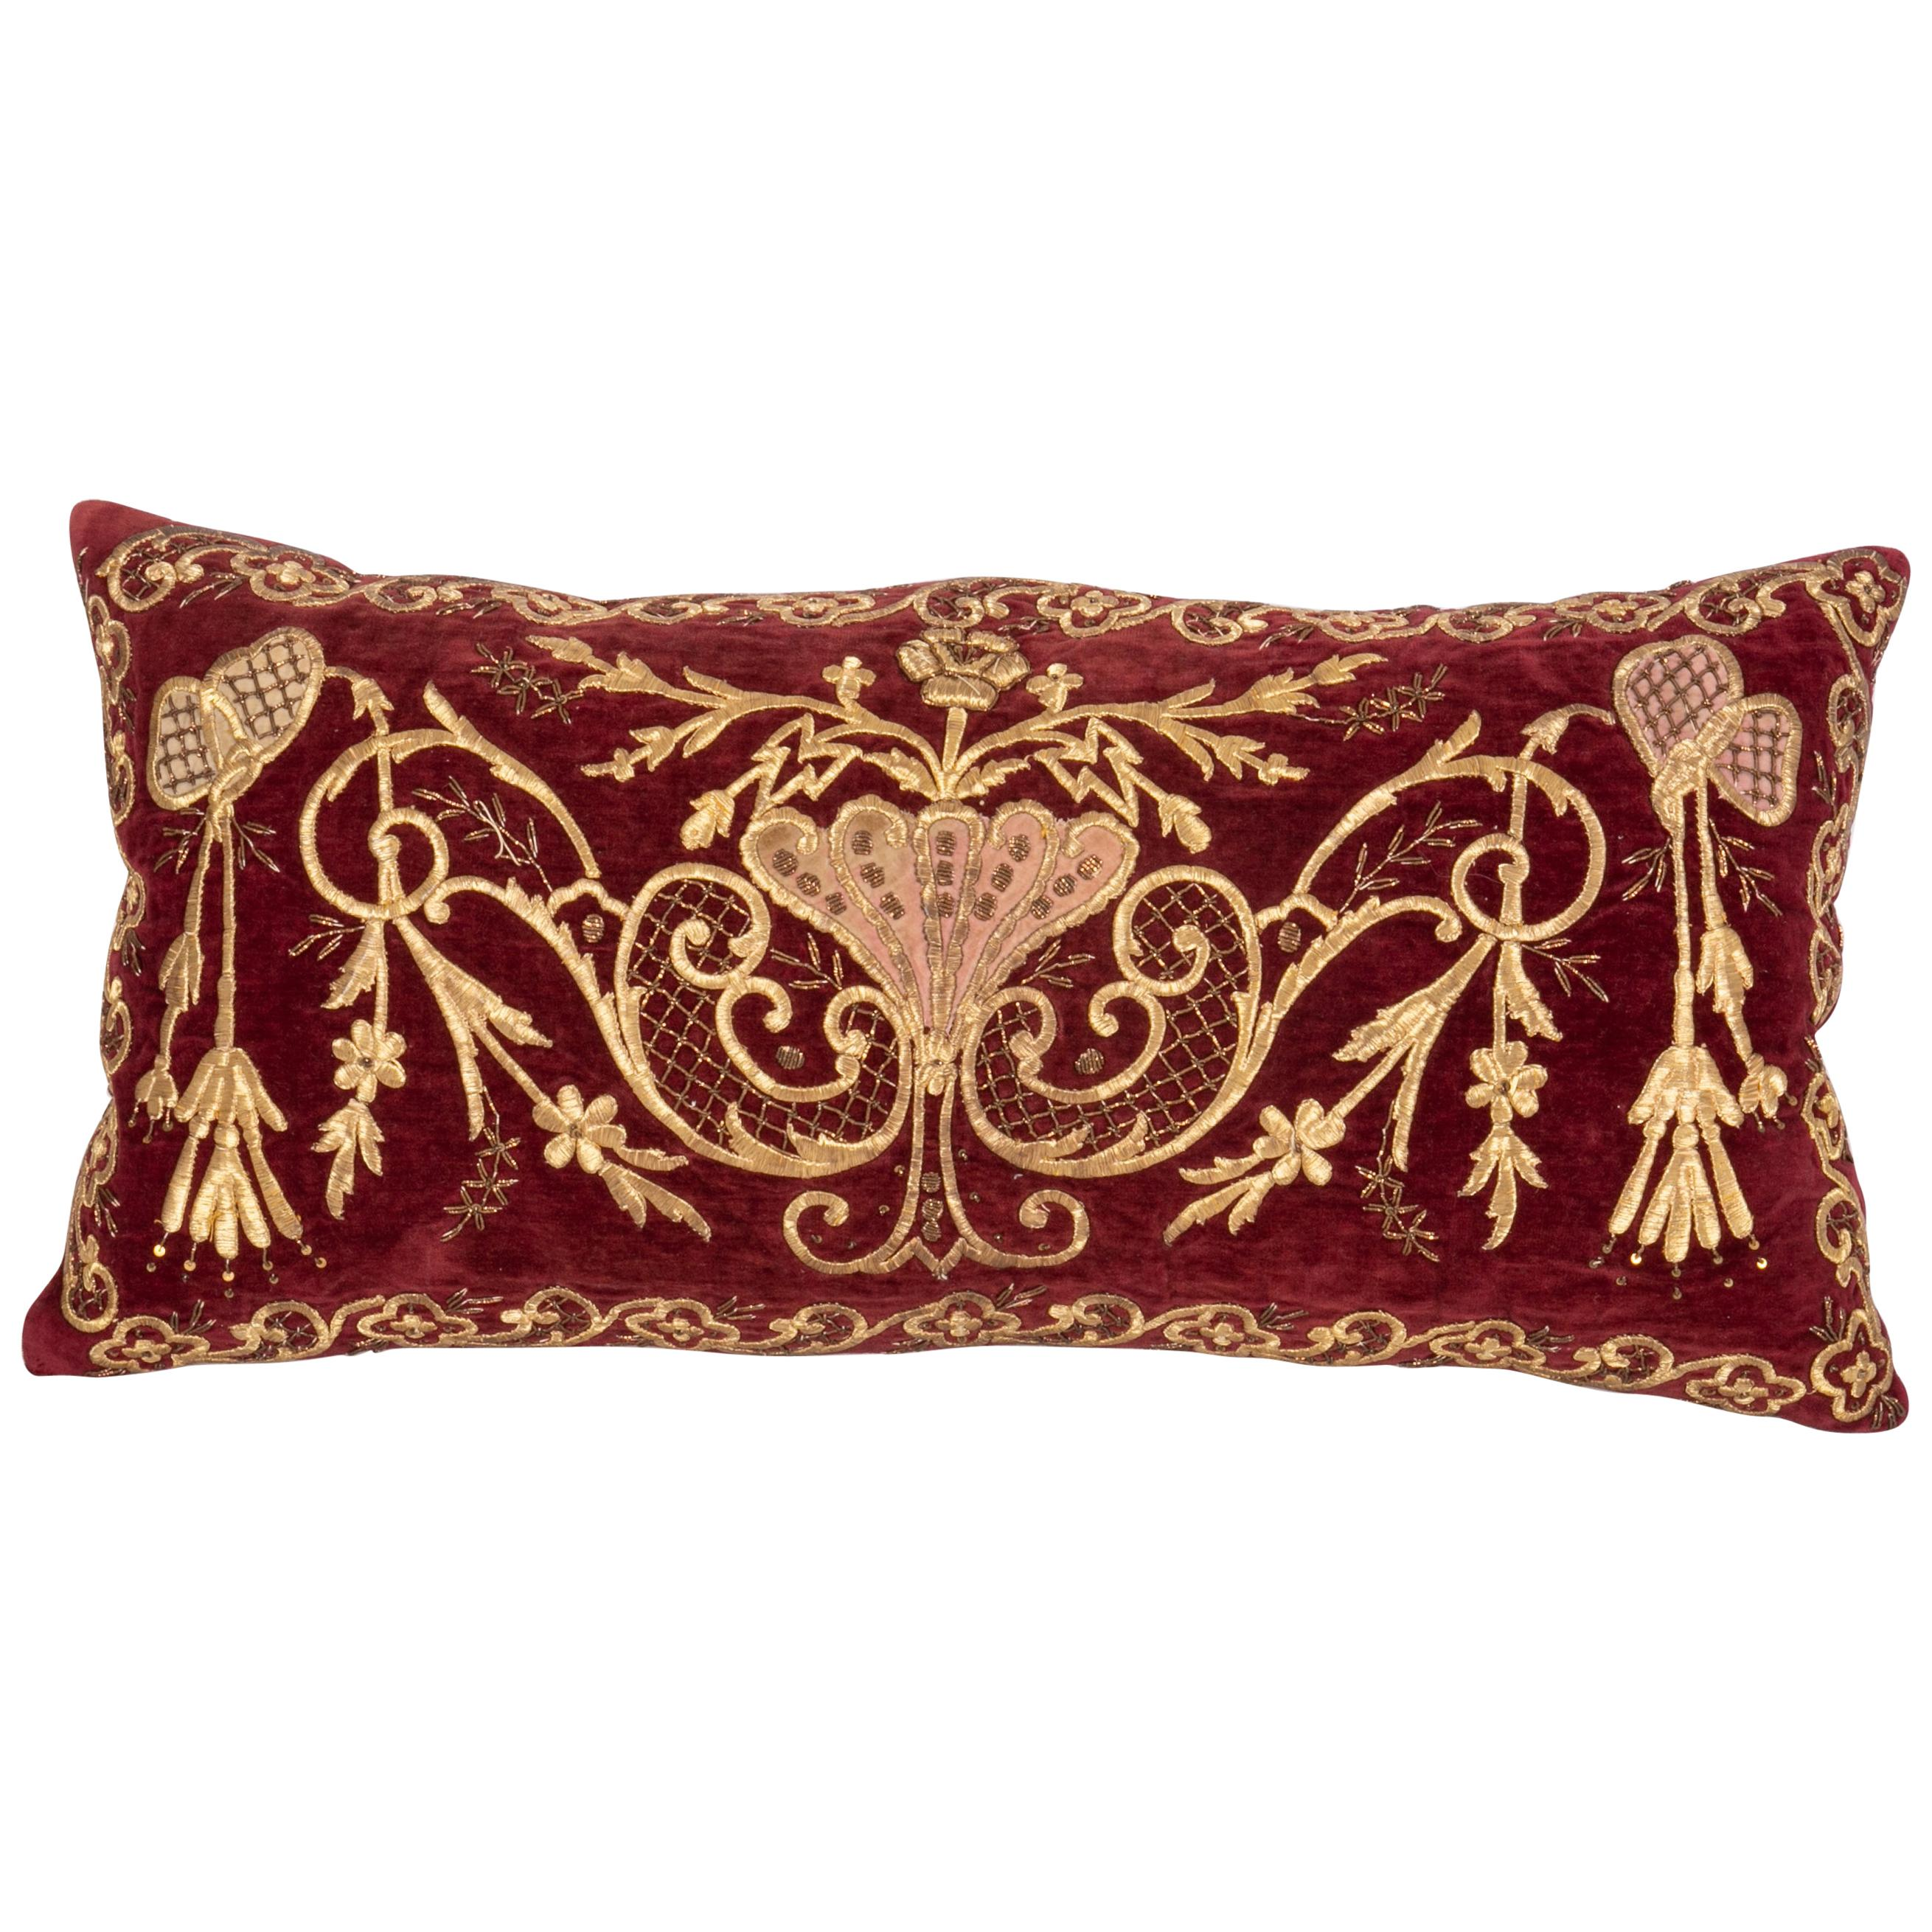 Antique Ottoman Gold on Purple Pillow Case, Late 19th C.